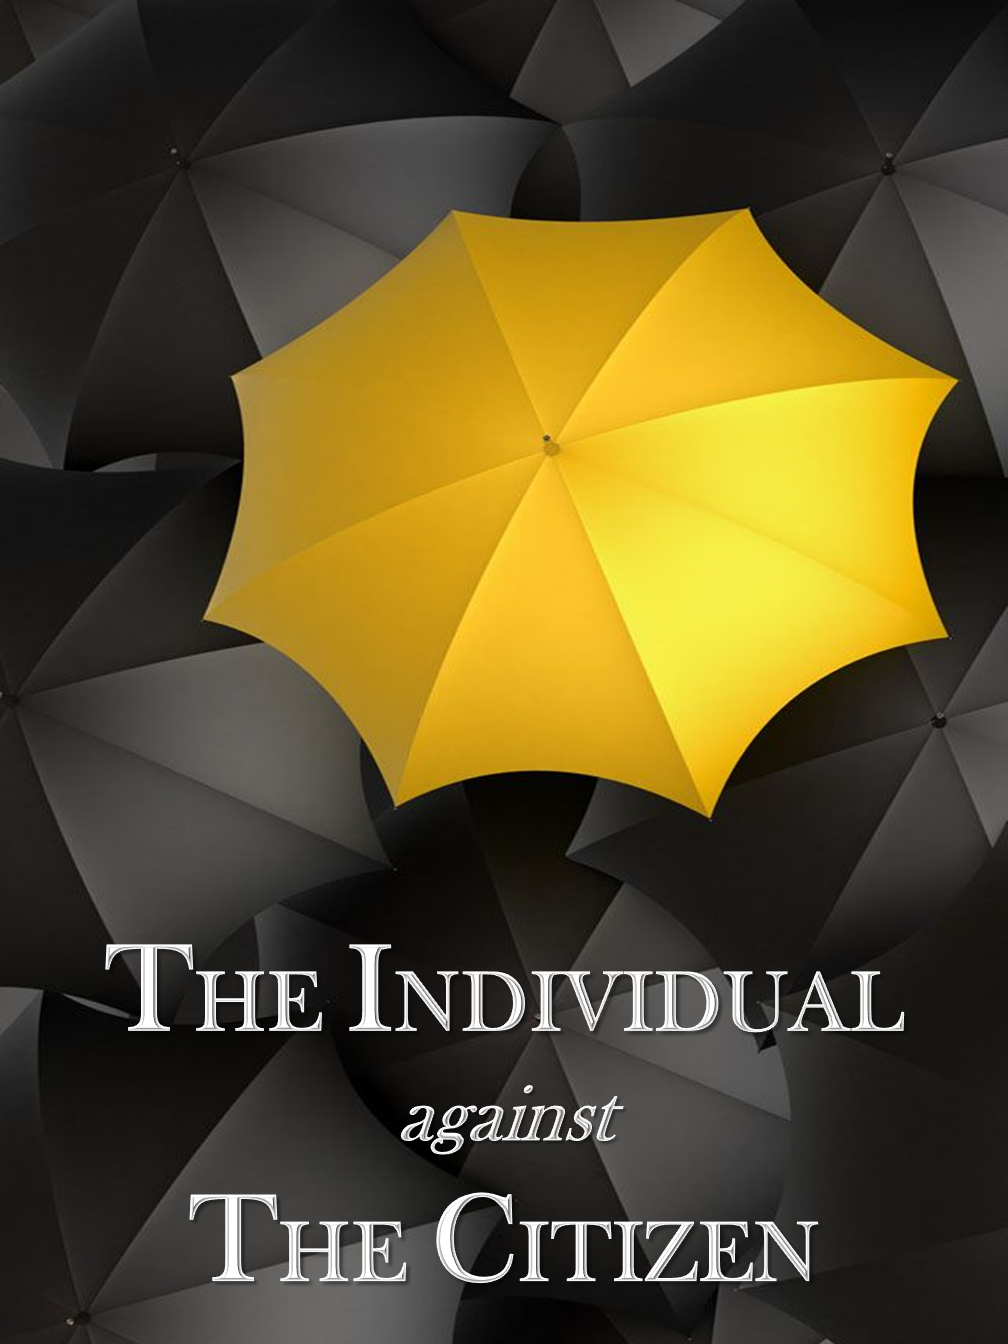 The Individual against The Citizen